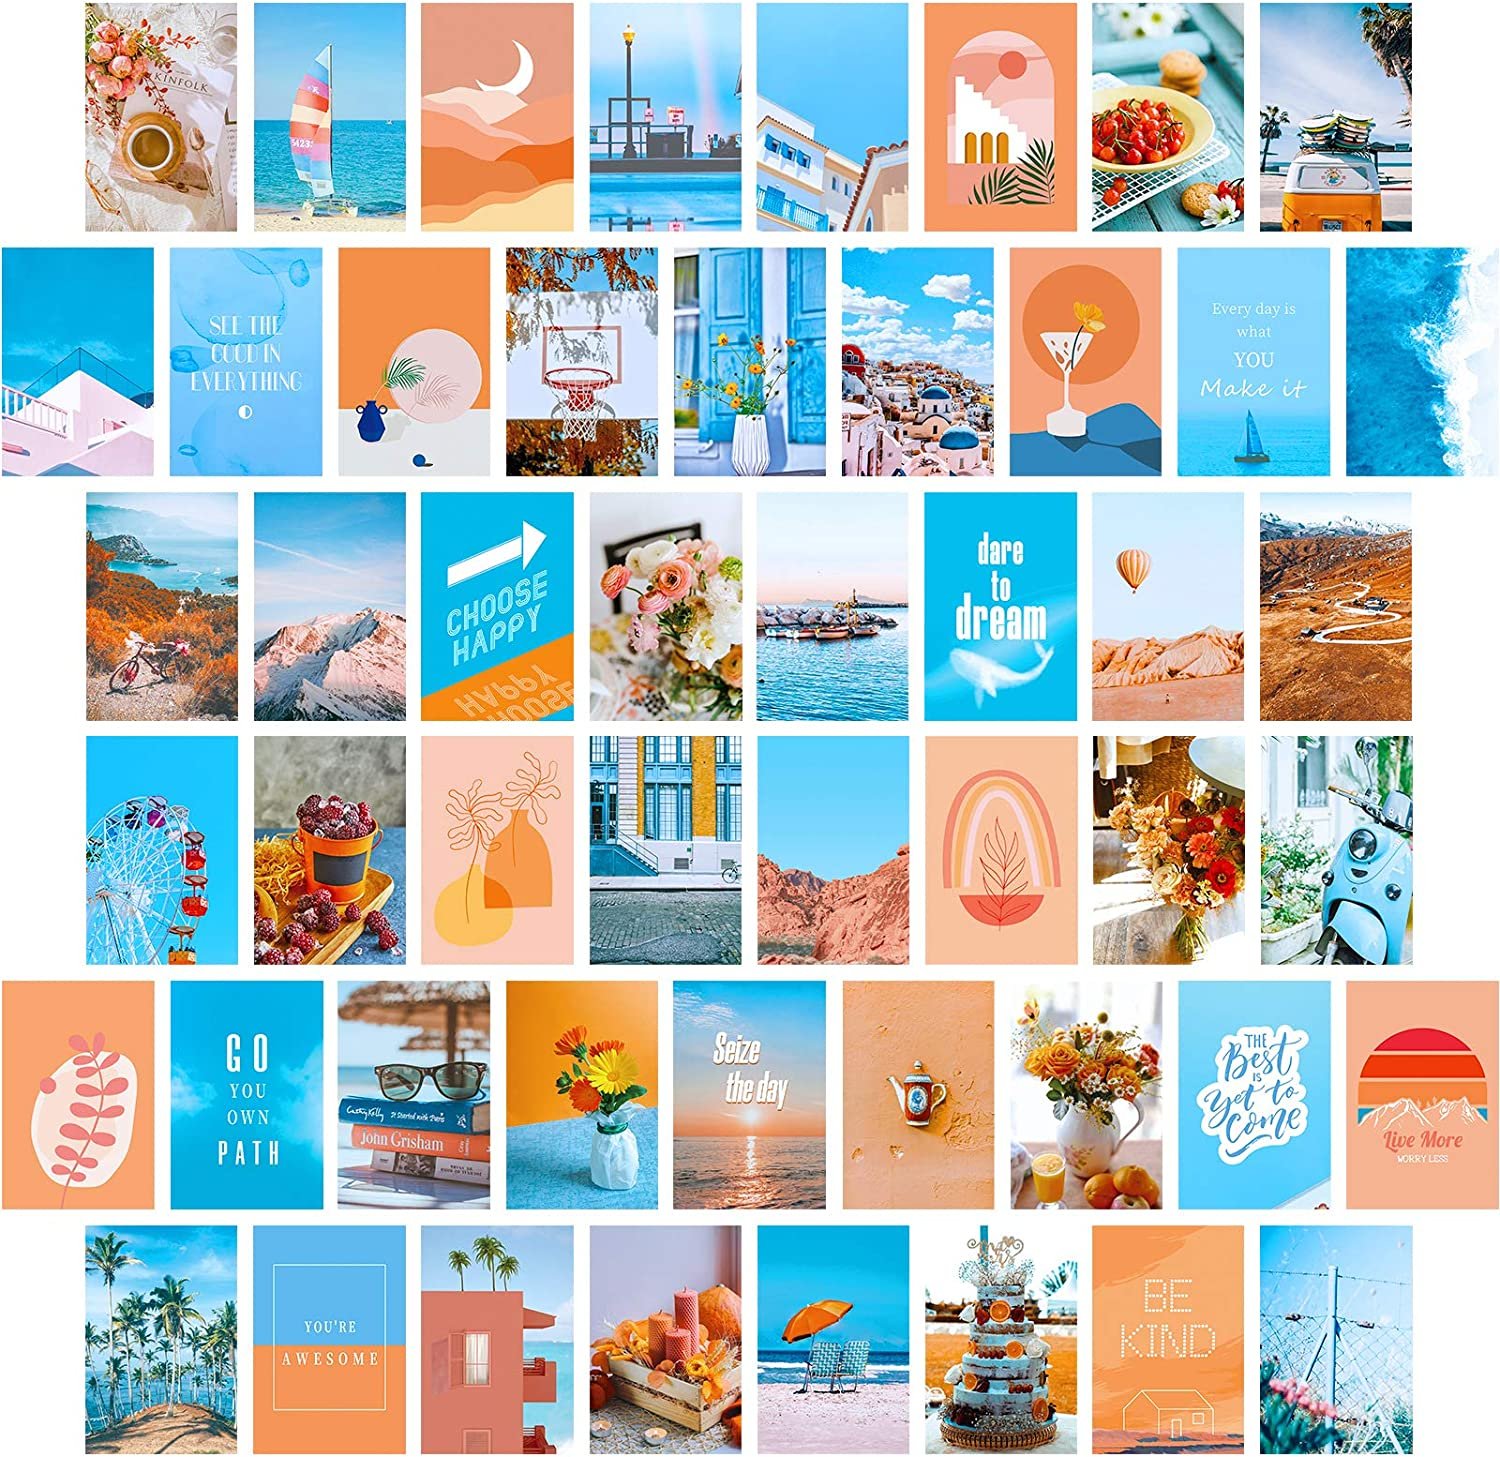 PAIVSUN Photo Wall Collage Kit Aesthetic Pictures - Cute Teen Room Decor for Girls Bedroom Aesthetic Posters for Teen Girls Room Dorm Wall Decor (50 Set 4x6 inch)